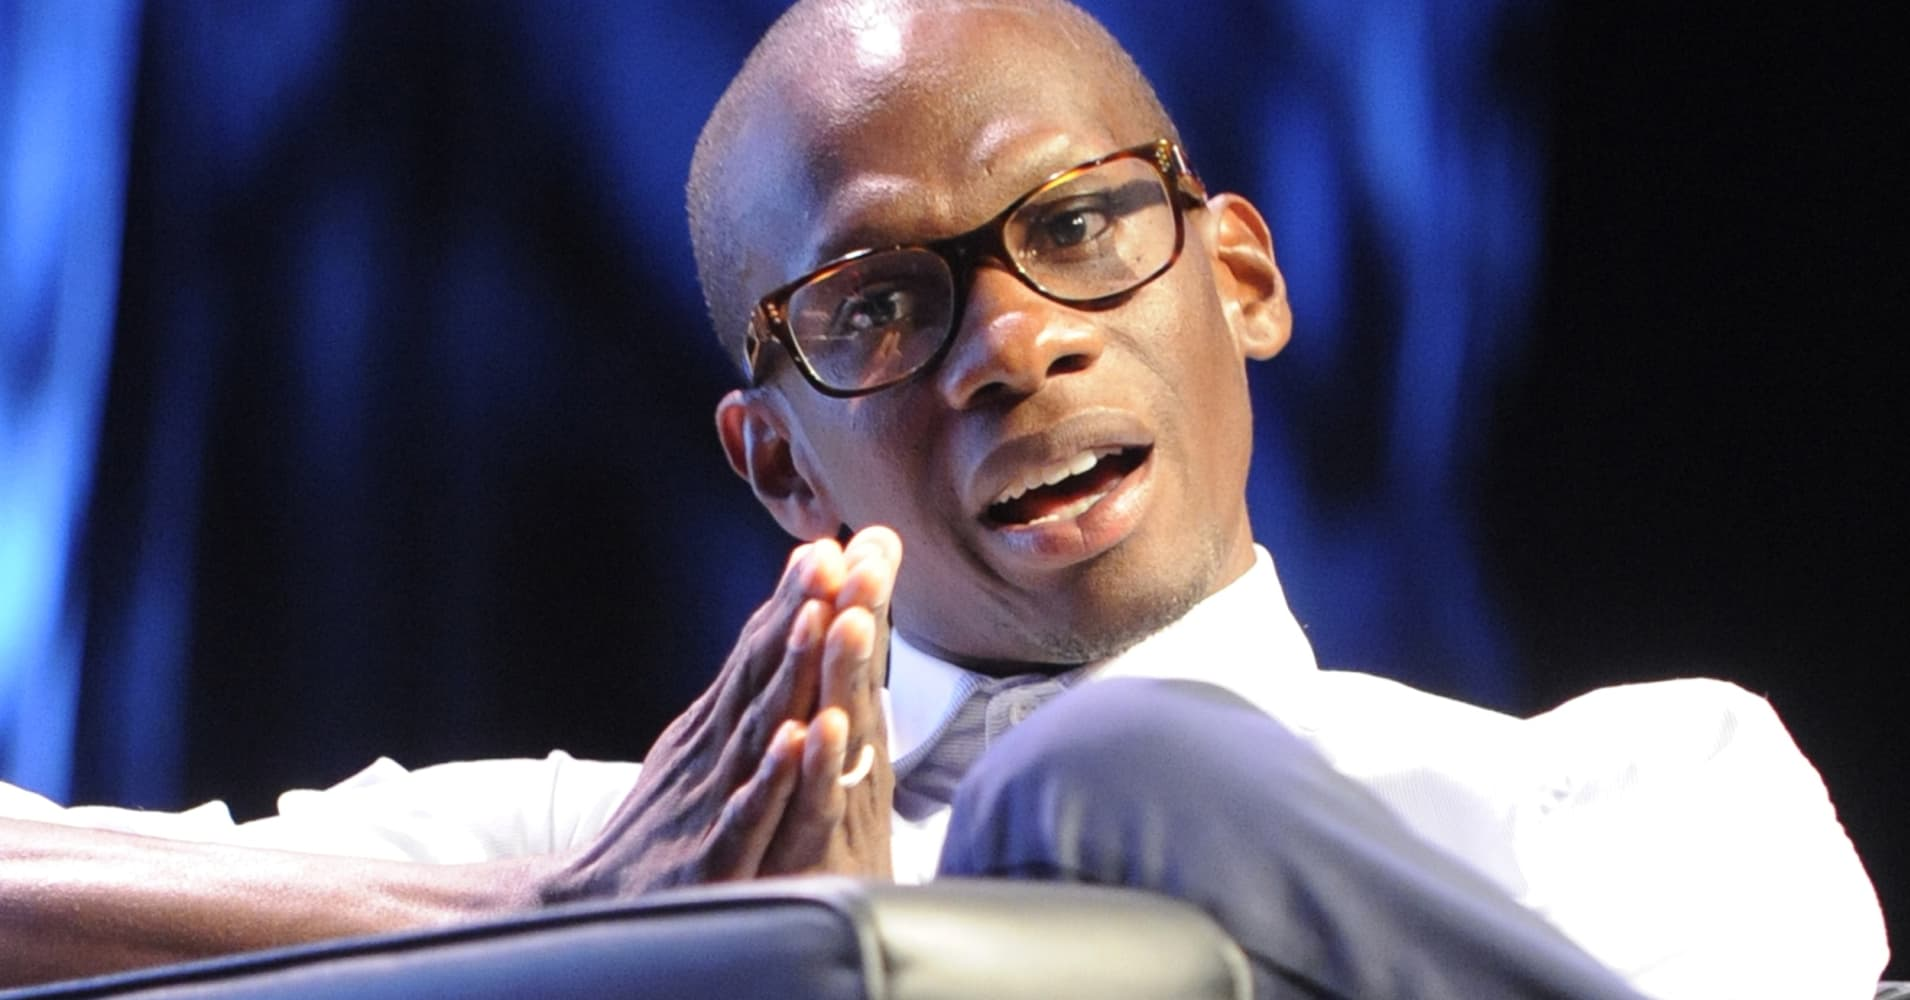 Troy Carter, Lady Gaga's former manager